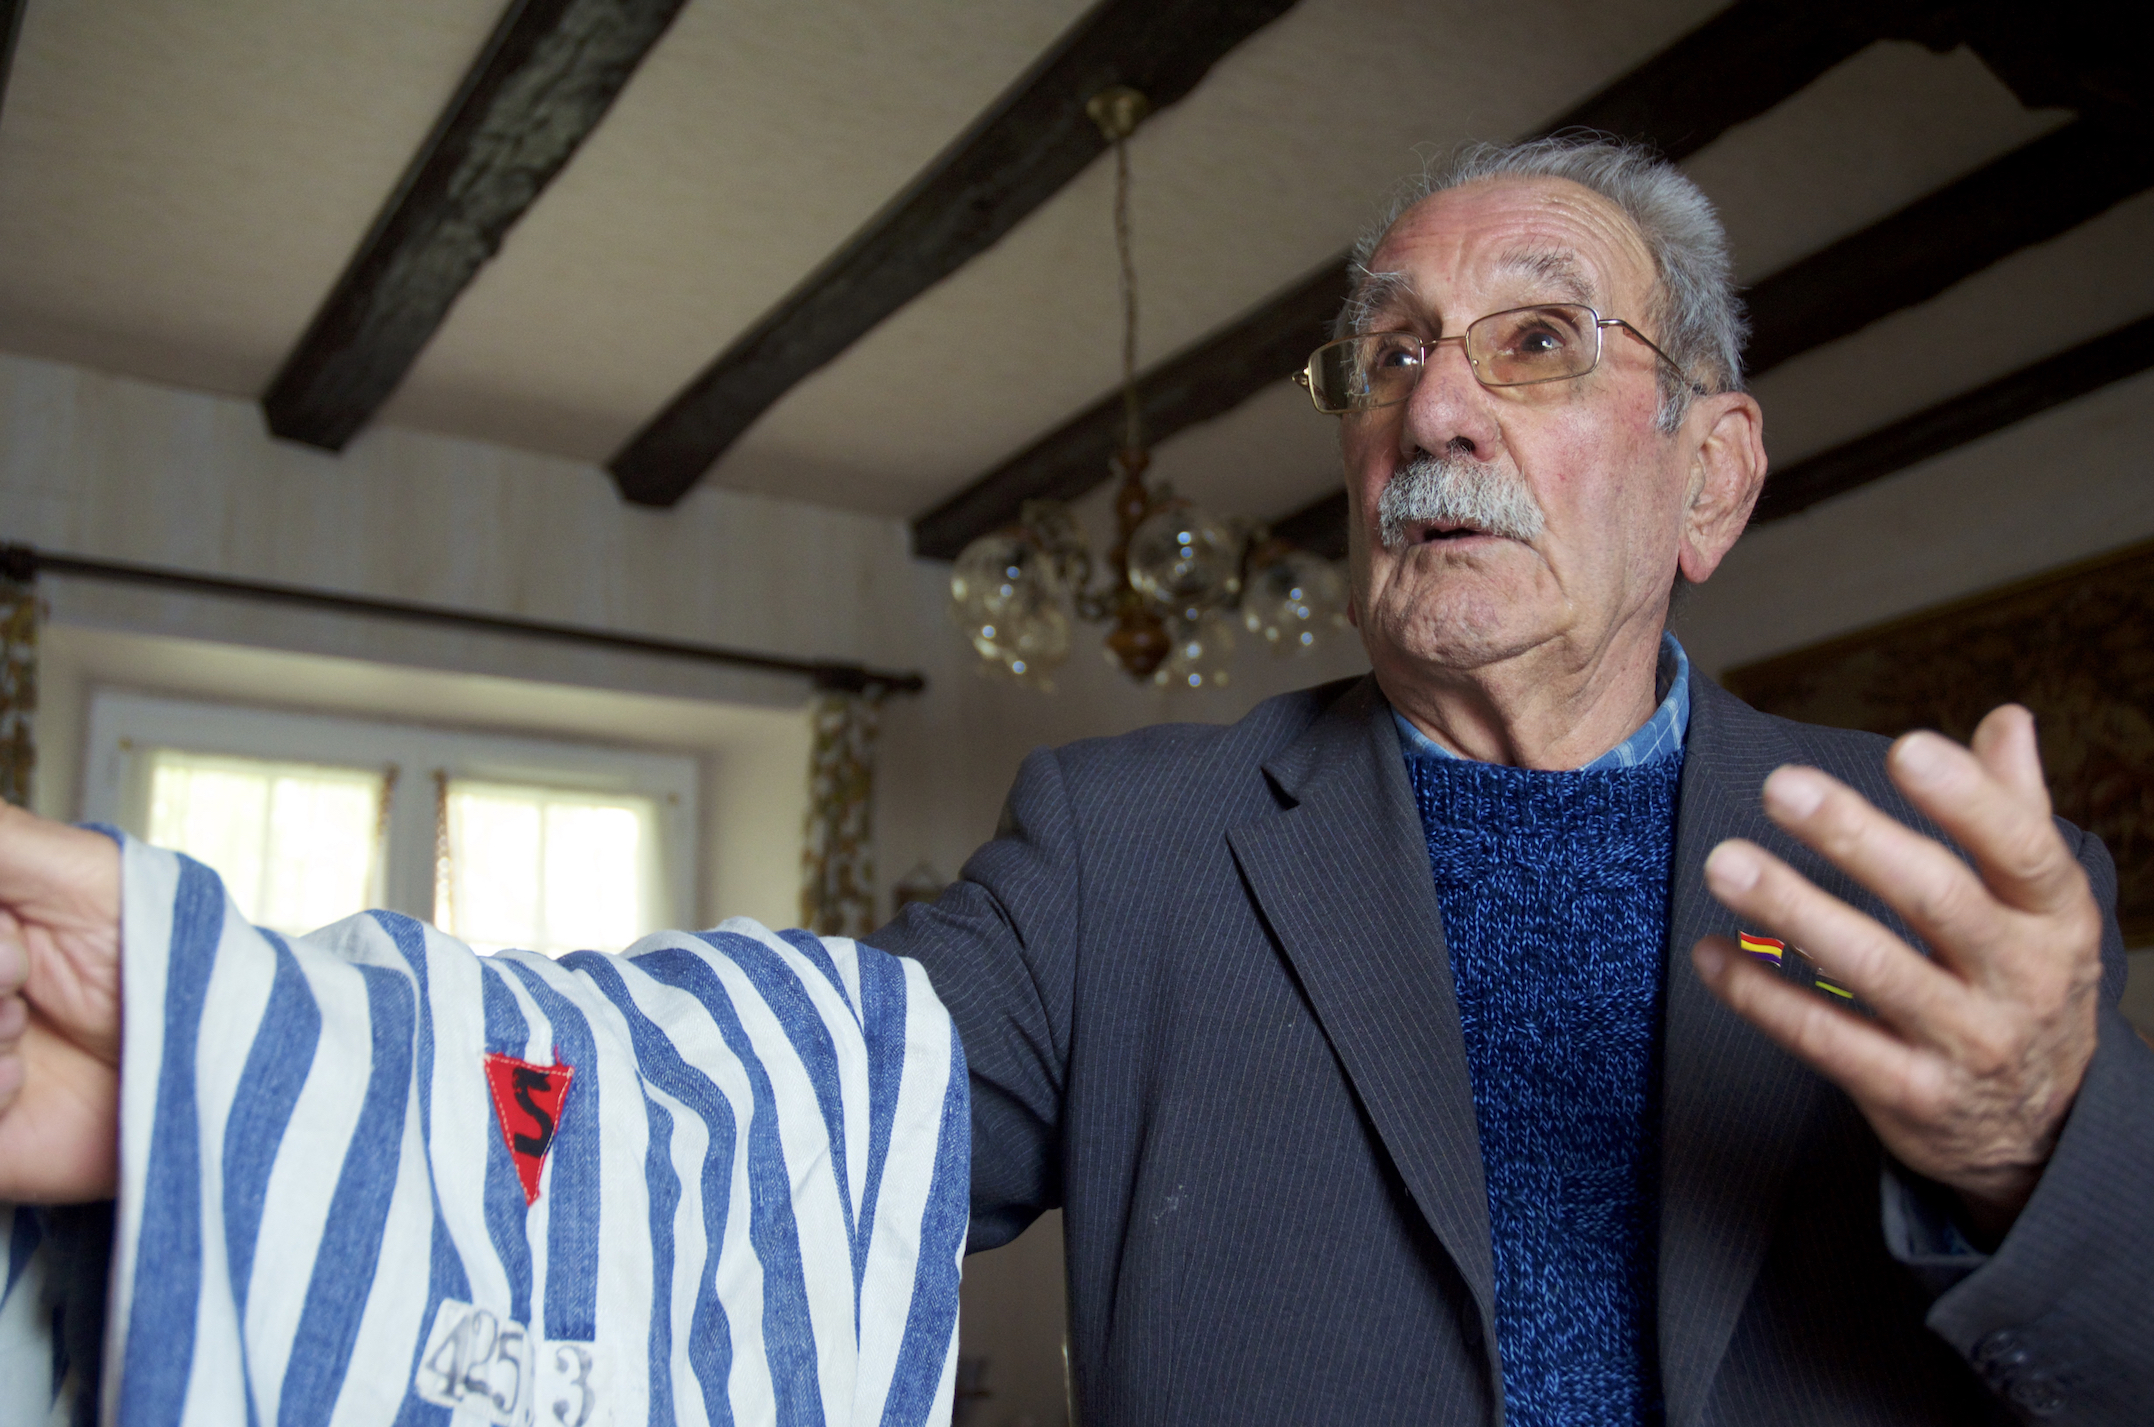 García Riestra holding the pants he wore in Buchenwald. Photo Deportados.es